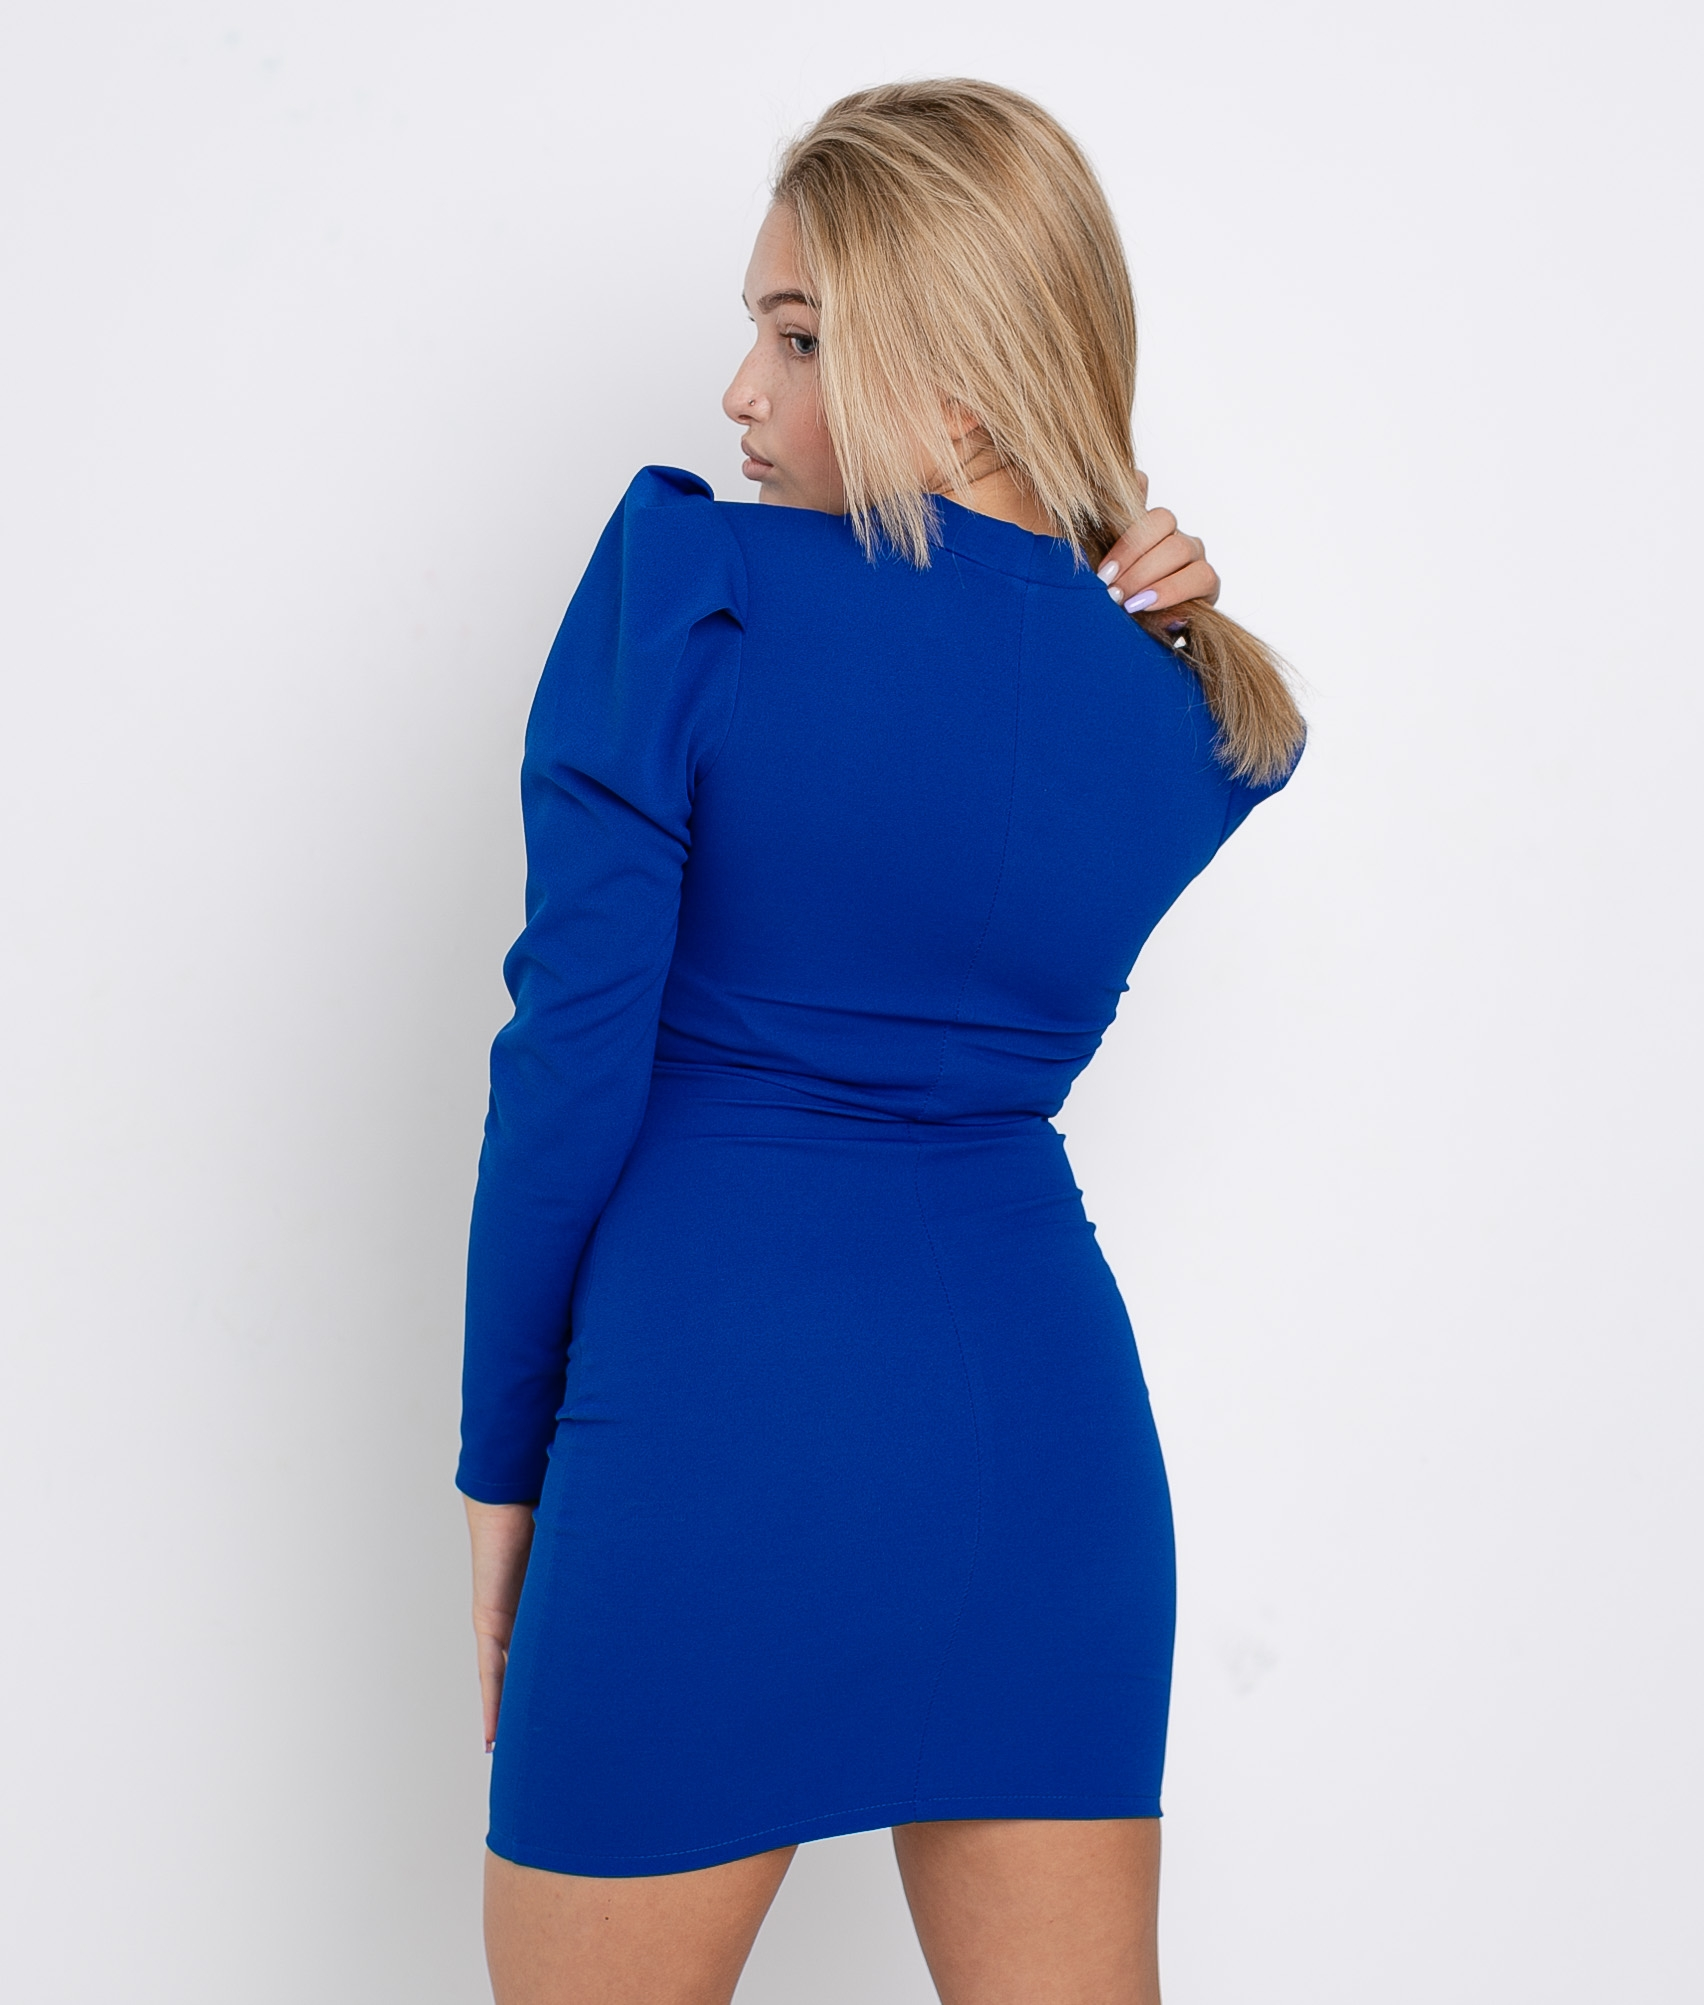 FICTION DRESS - BLUE